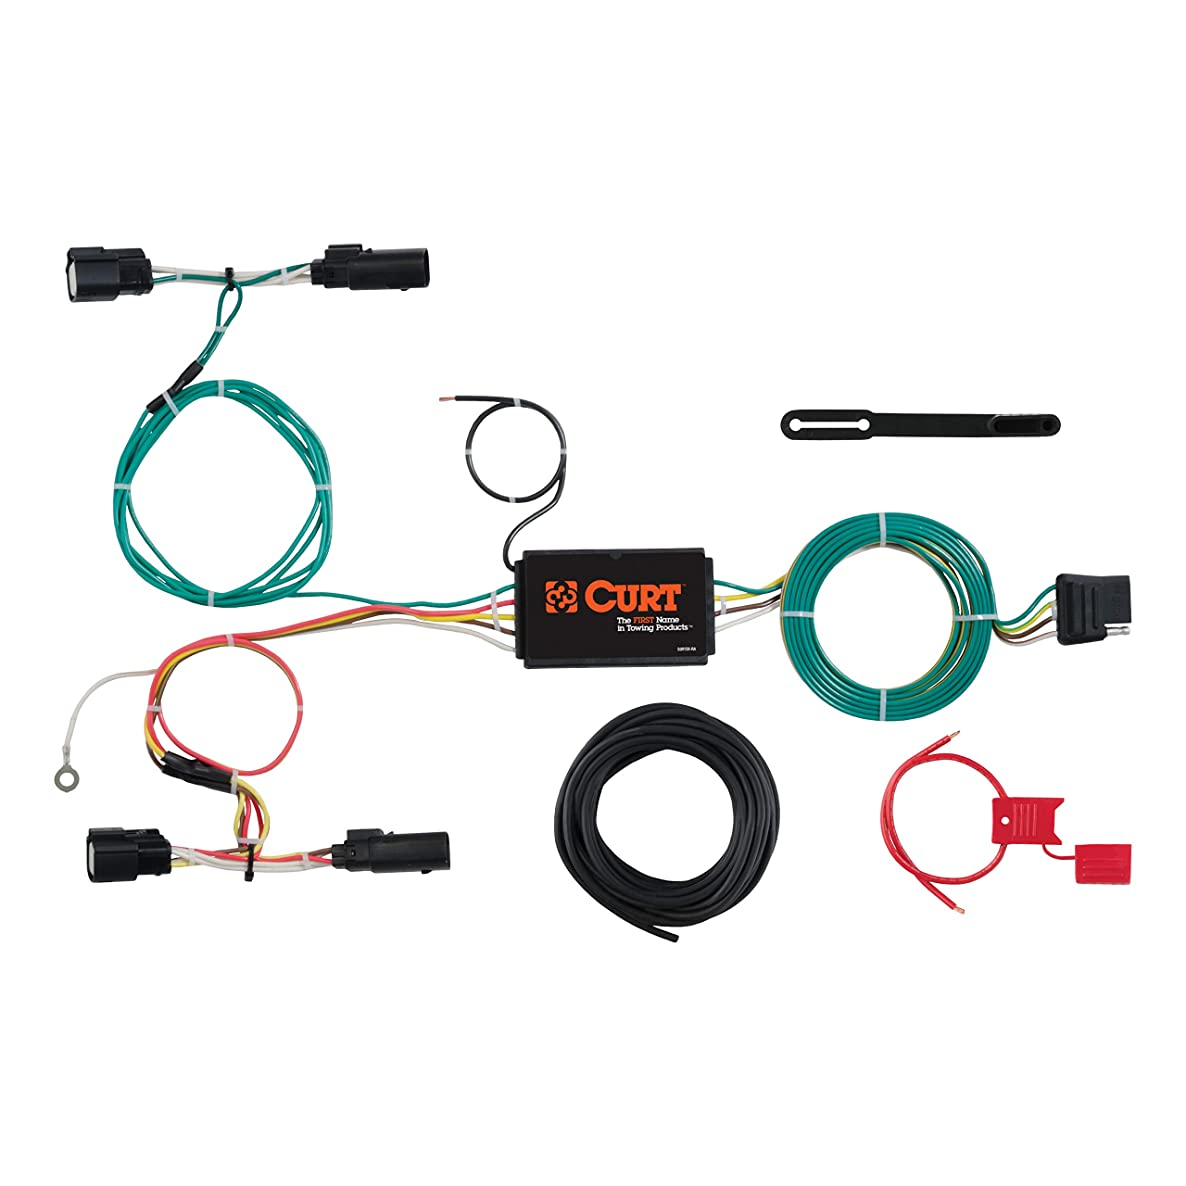 CURT 56273 Vehicle-Side Custom 4-Pin Trailer Wiring Harness for Select Ford Focus